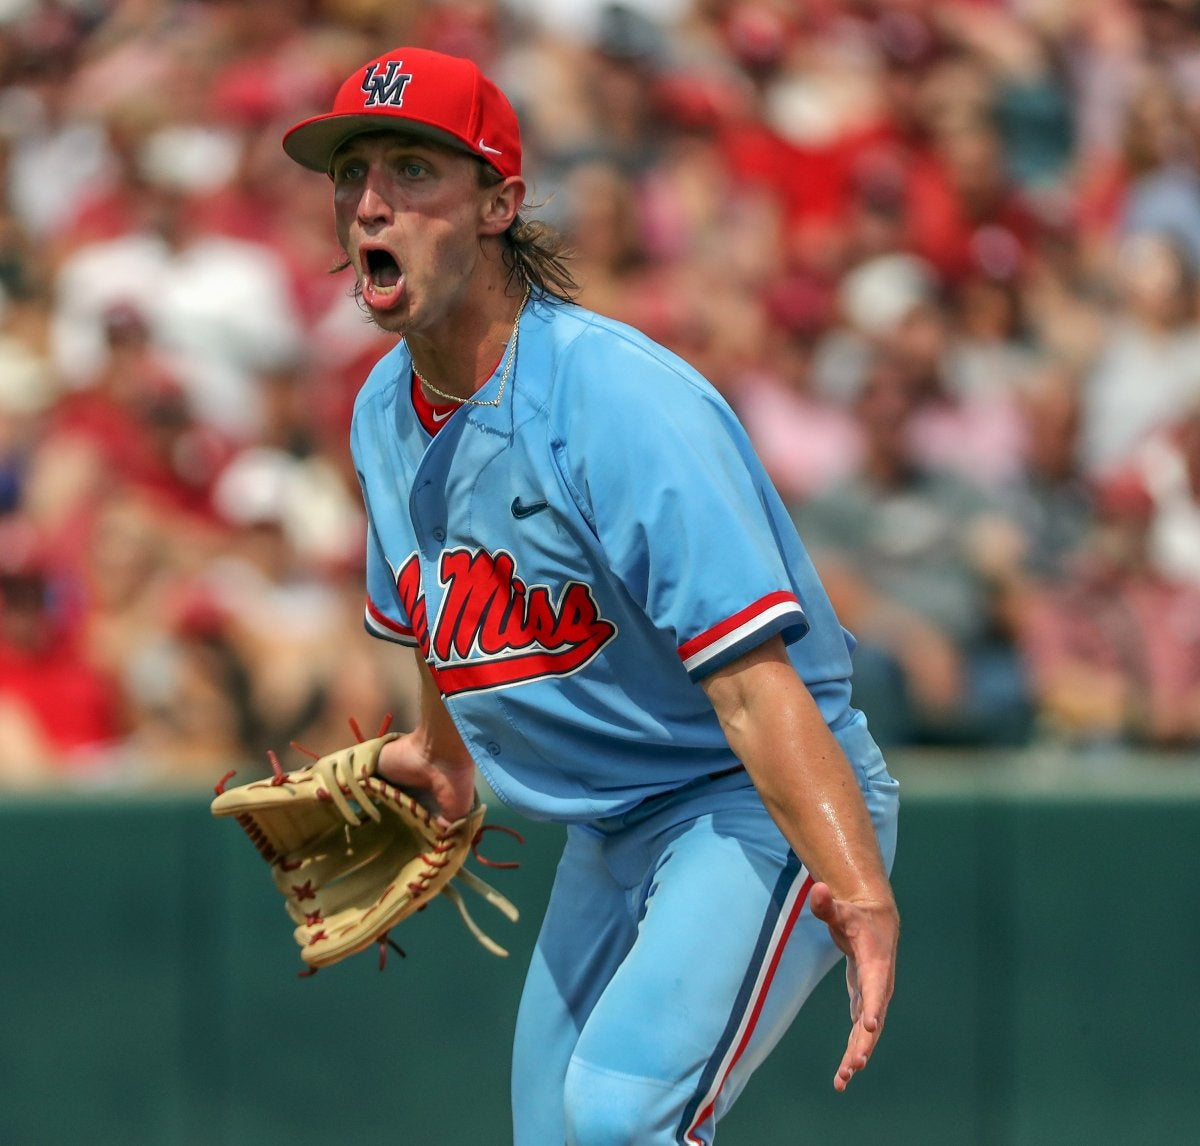 100% authentic 429be 044ec Ole Miss baseball announces 2019 fall schedule